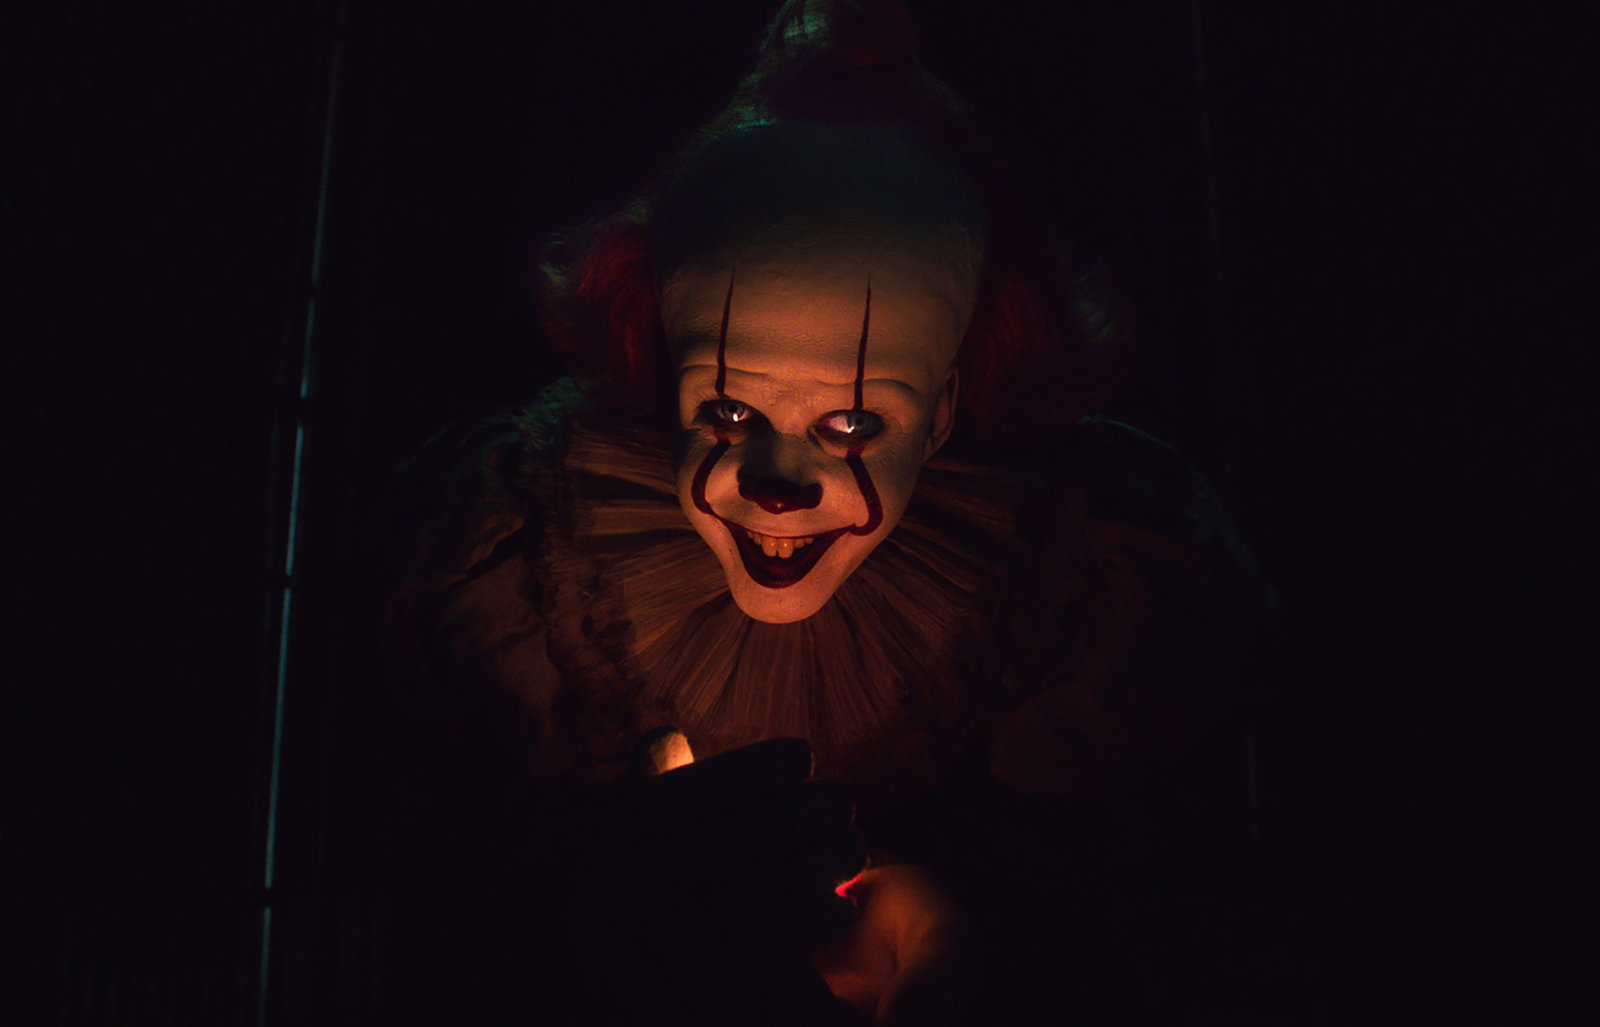 It: Chapter Two (2019) image